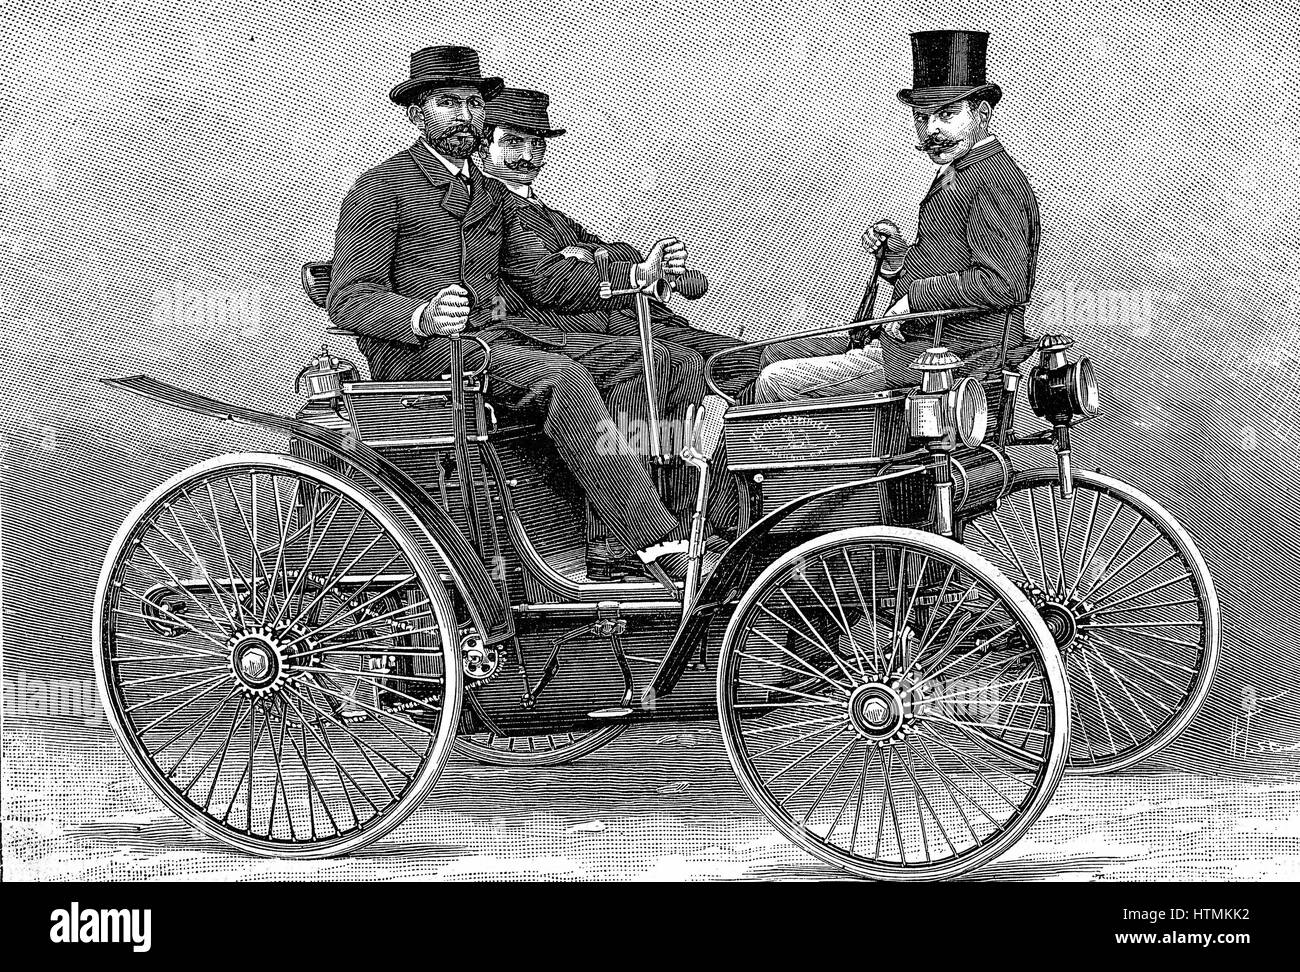 First Automobile With Petrol Engine Stock Photos & First Automobile ...